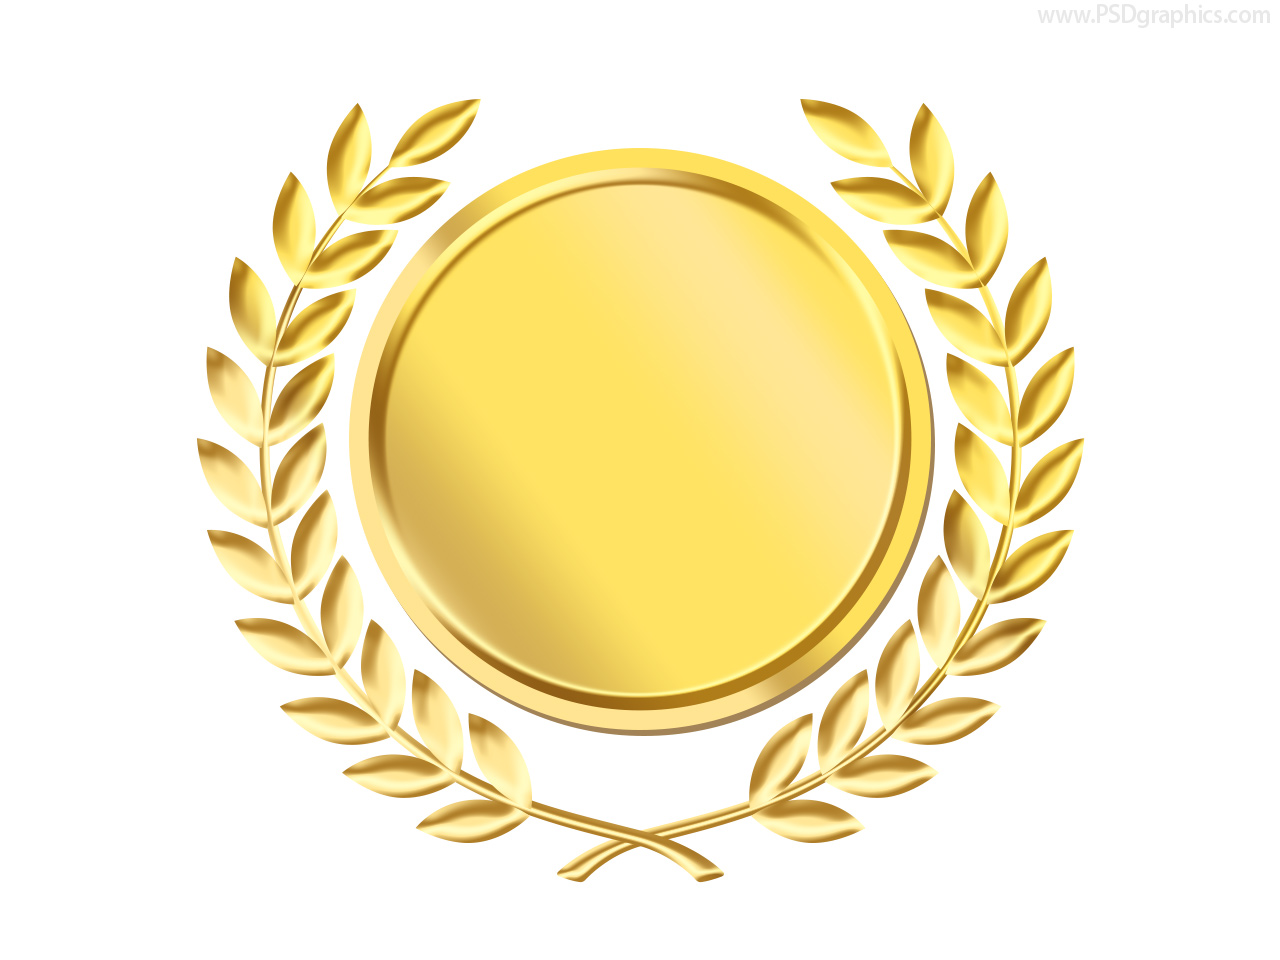 Laurel Wreath Gold Medal Award